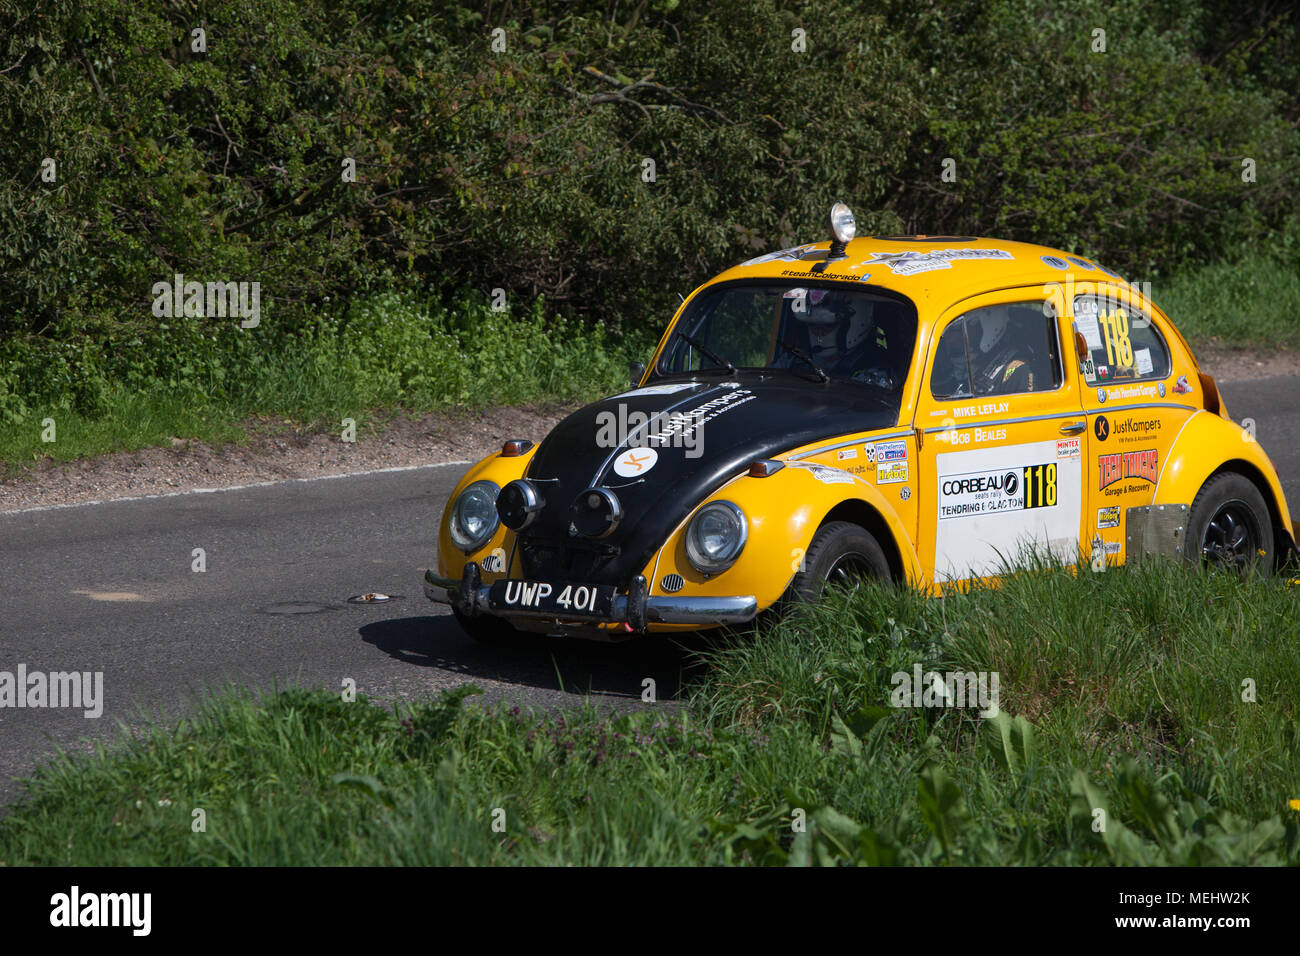 Tendring and Clacton, England. 22nd April, 2018. The first ever closed road rally to be held in England sweeps through Tendring, Essex. The trailblazing Corbeau seats rally sees 120 competitors compete across five special stages. Around 10,000 spectators cheer on the drivers. Stephanie Humphries/Alamy Live News - Stock Image